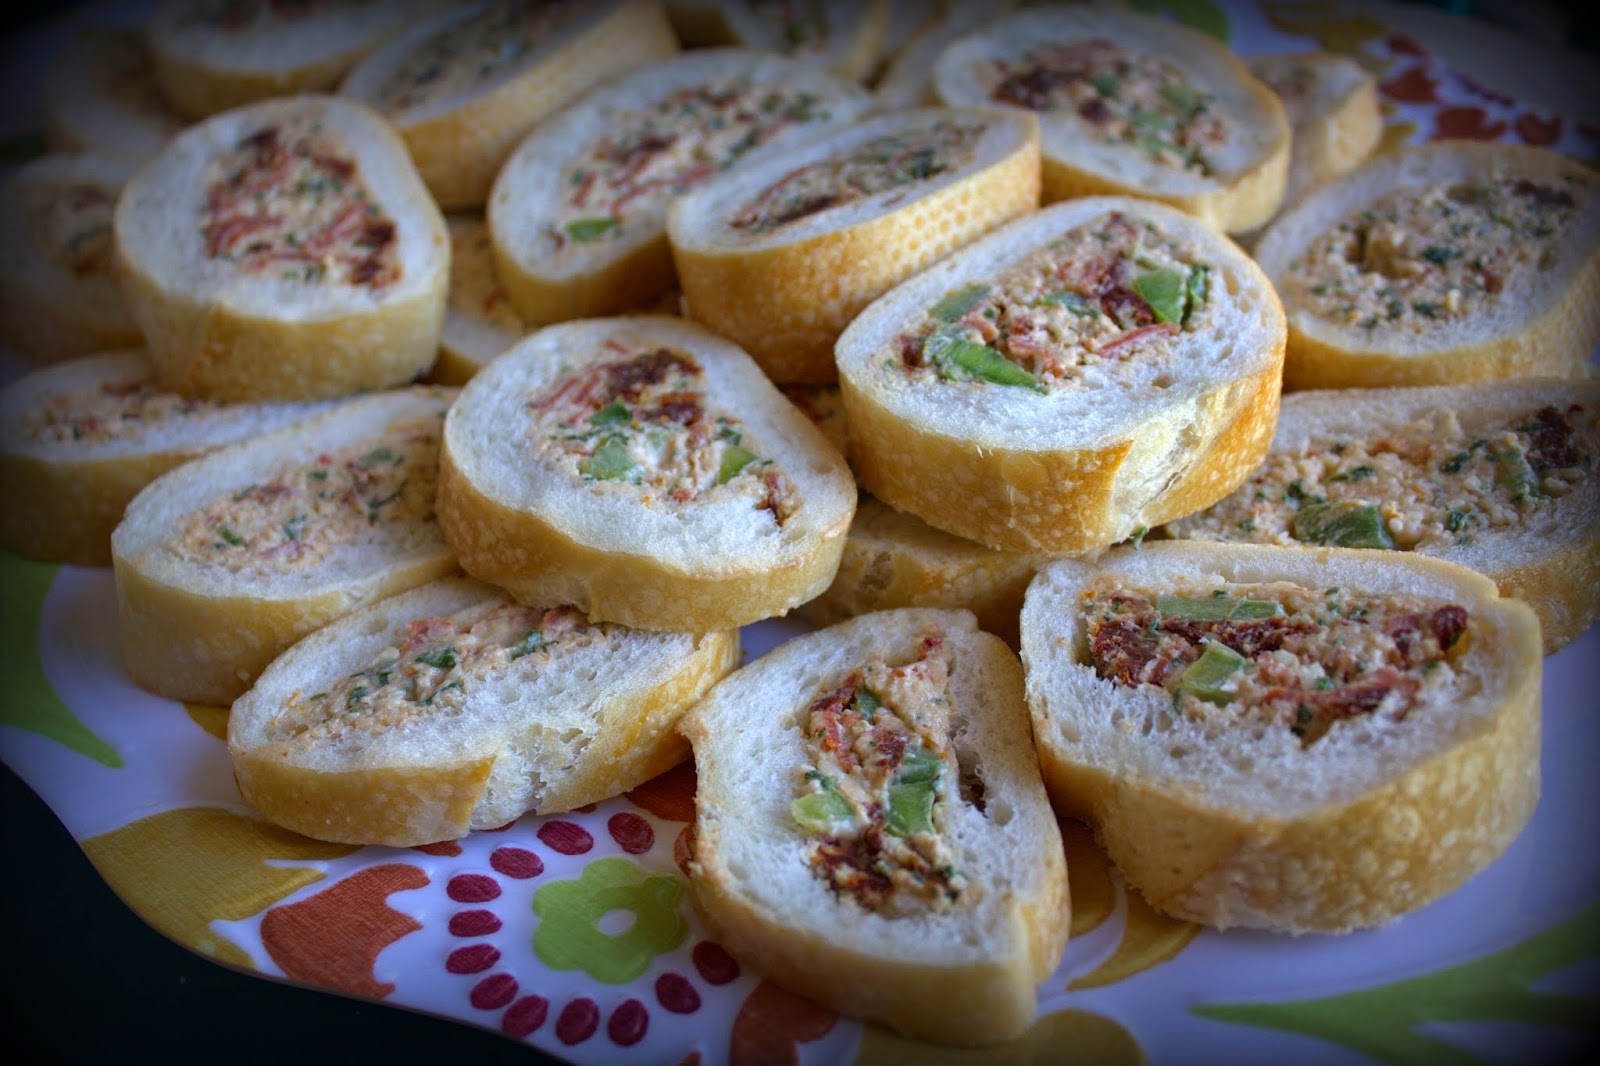 Holiday appetizer at sams club - Cook and Post